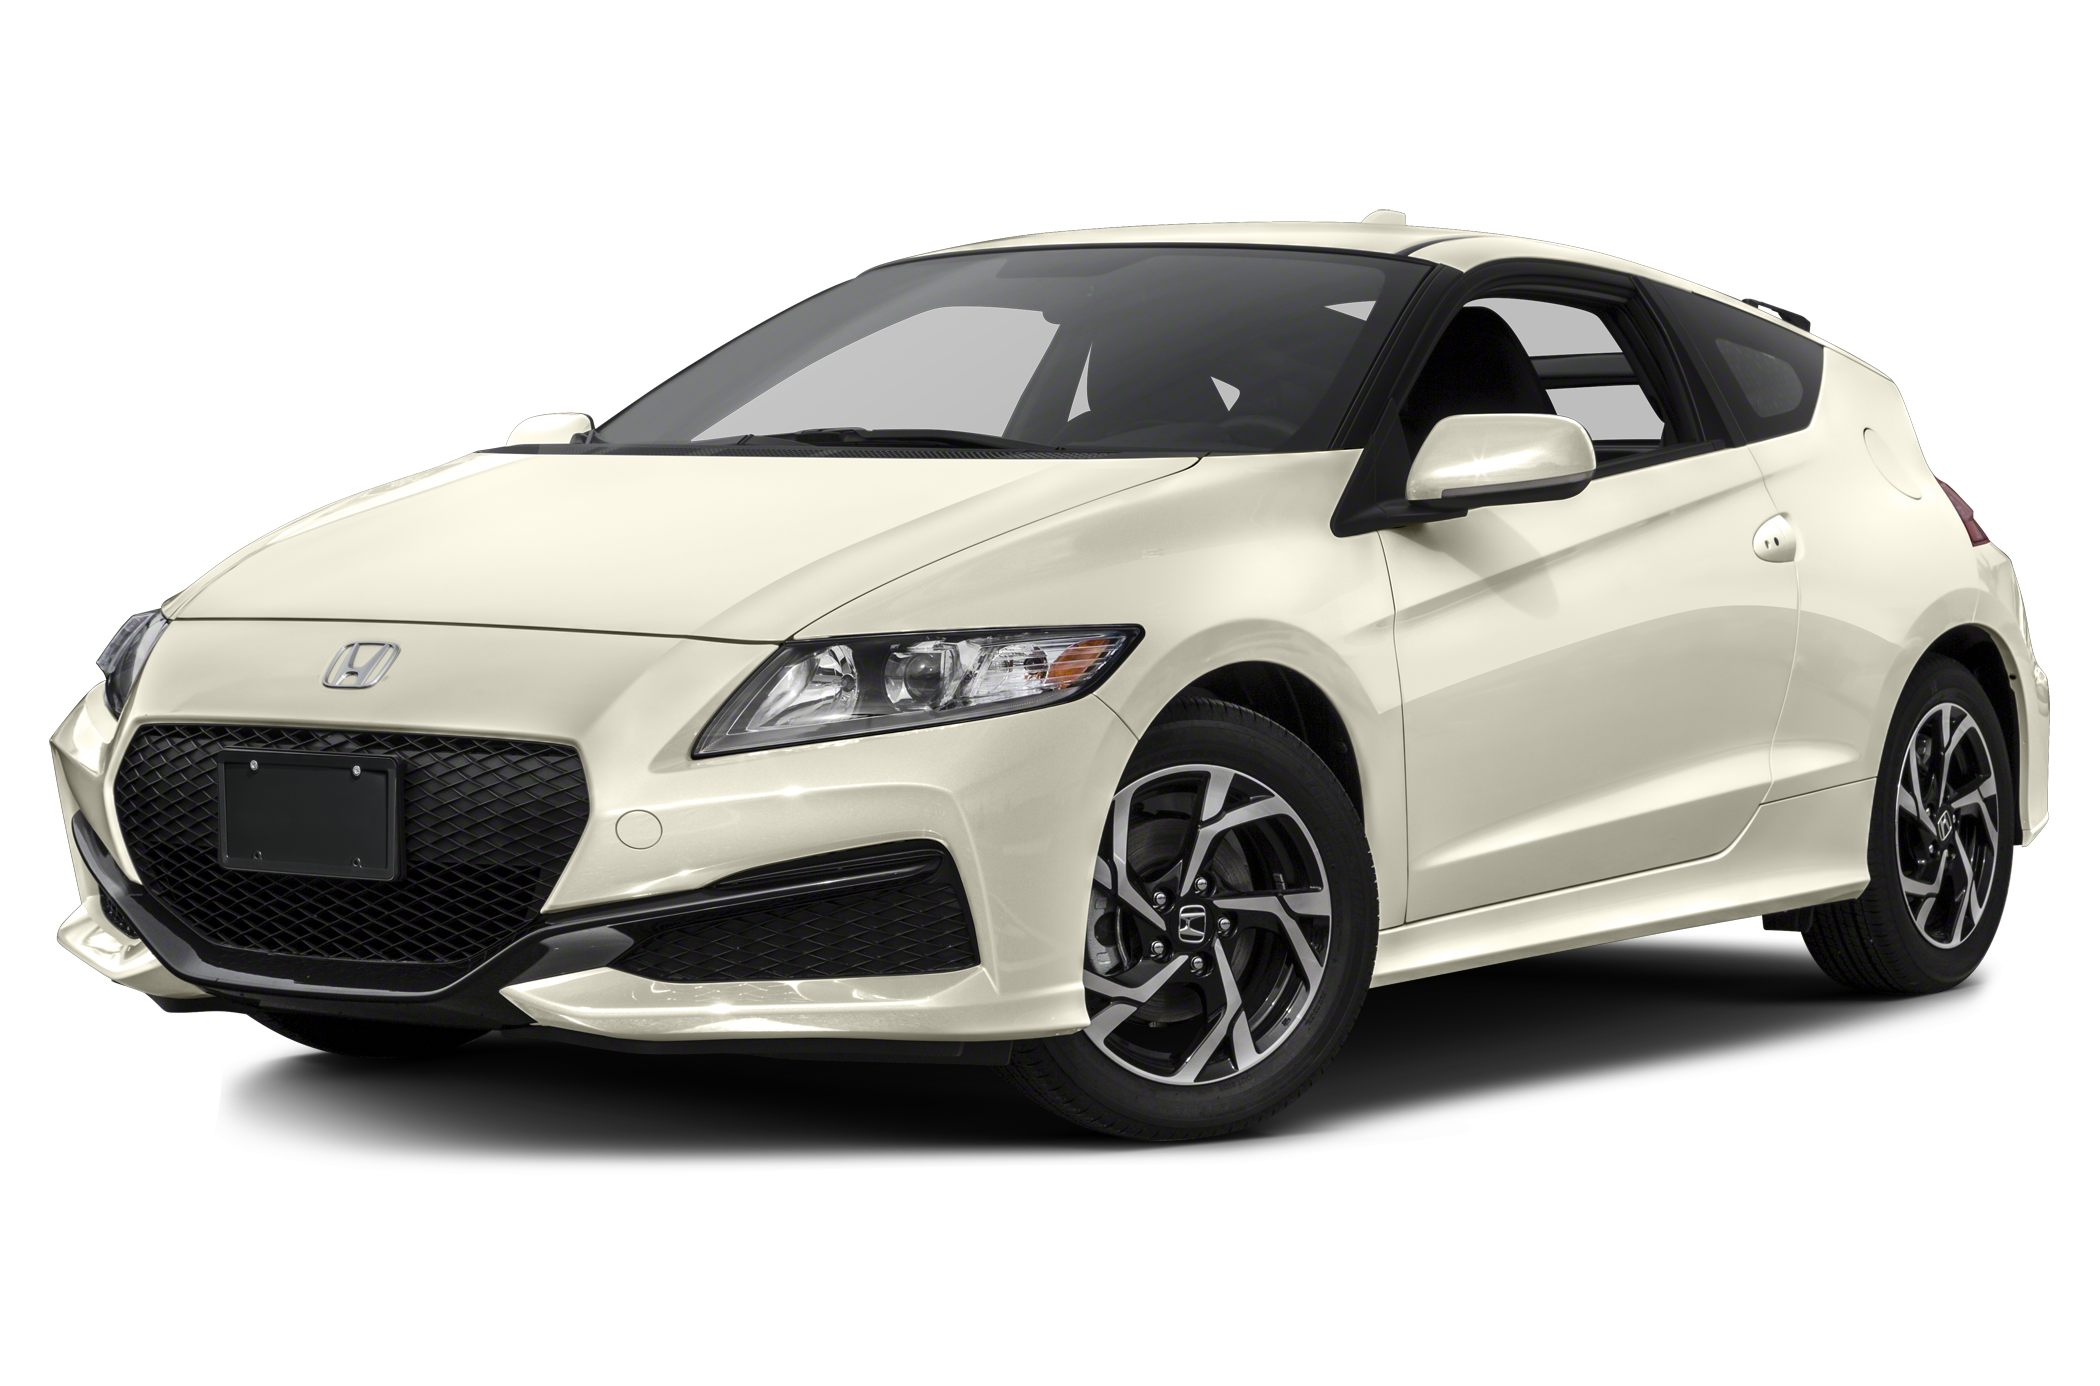 2016 Honda Cr Z Pricing And Specs